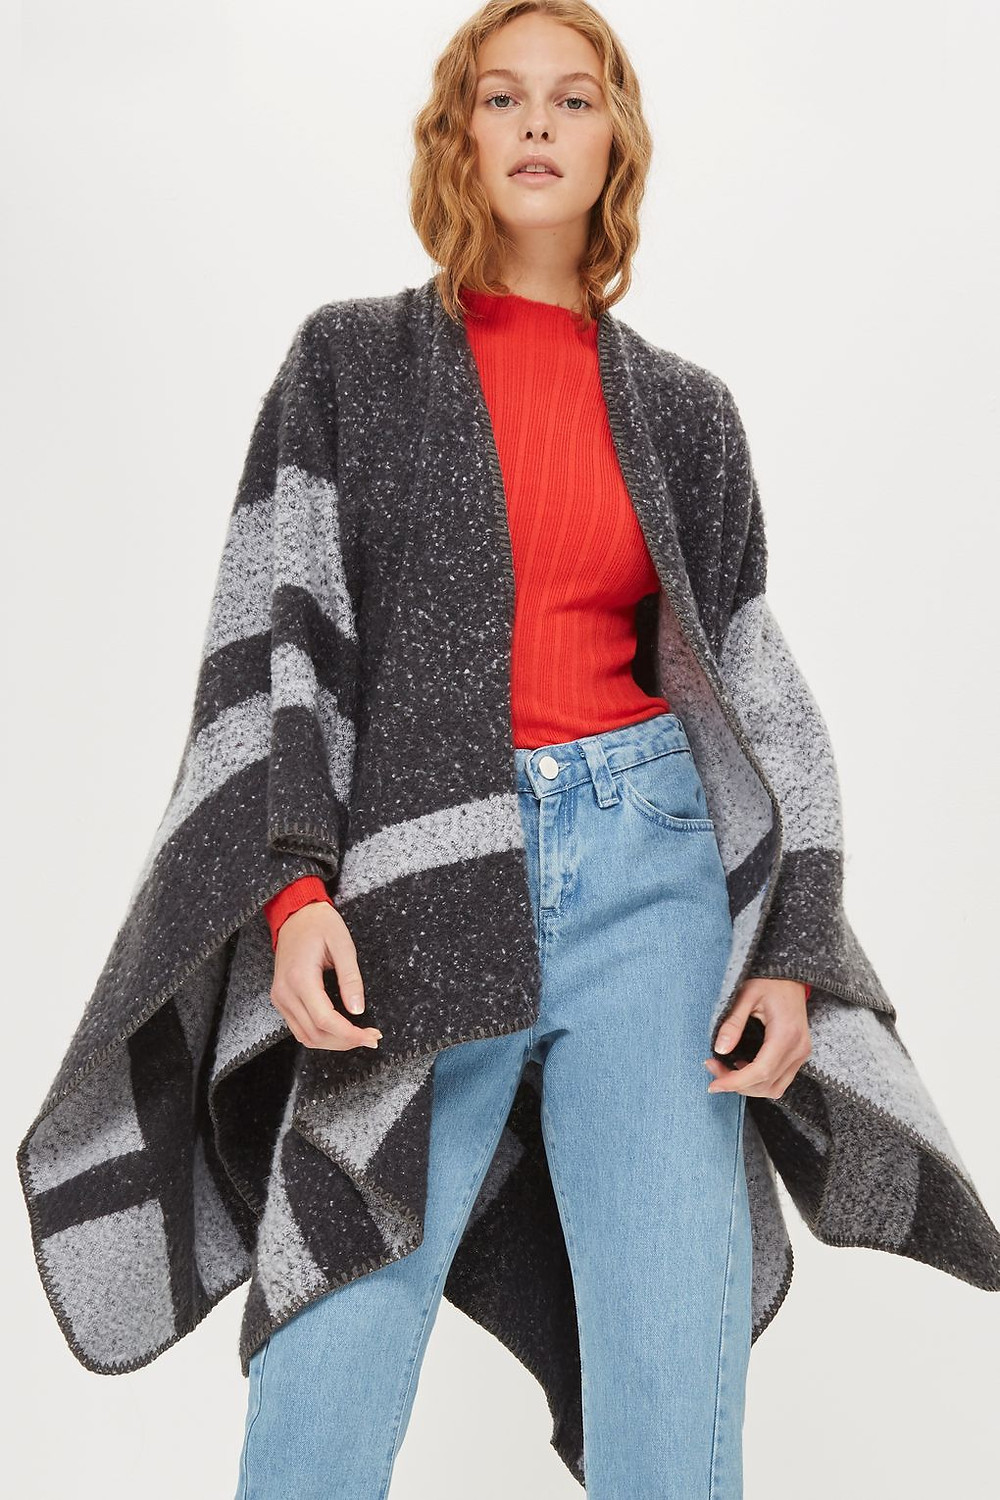 Topshop Colour Block Cape $60